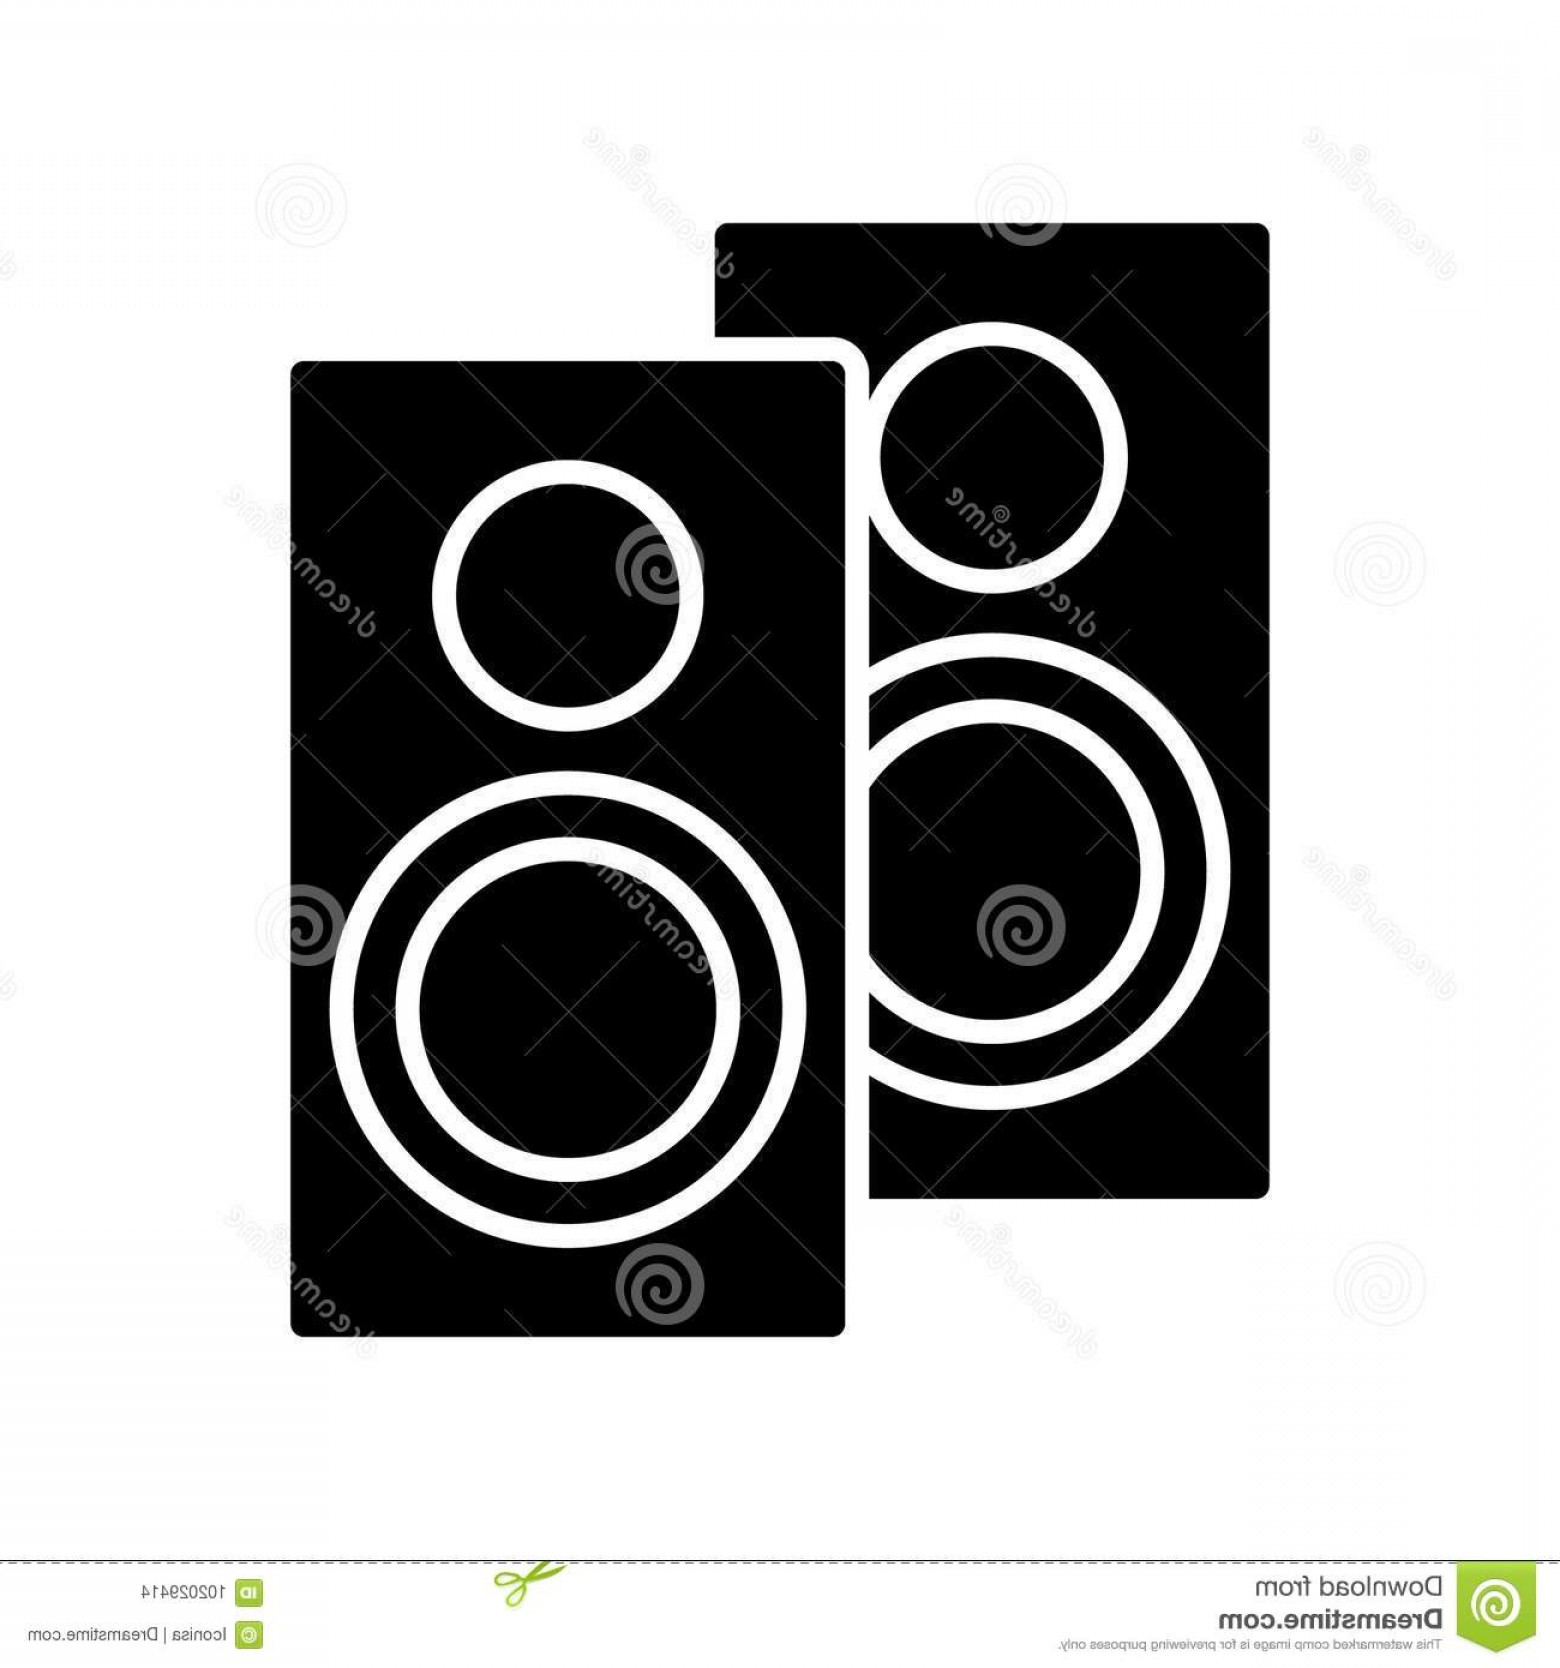 Speakers Vector Black: Speakers Icon Illustration Vector Sign Isolated Background Speakers Icon Vector Illustration Black Sign Isolated Background Image